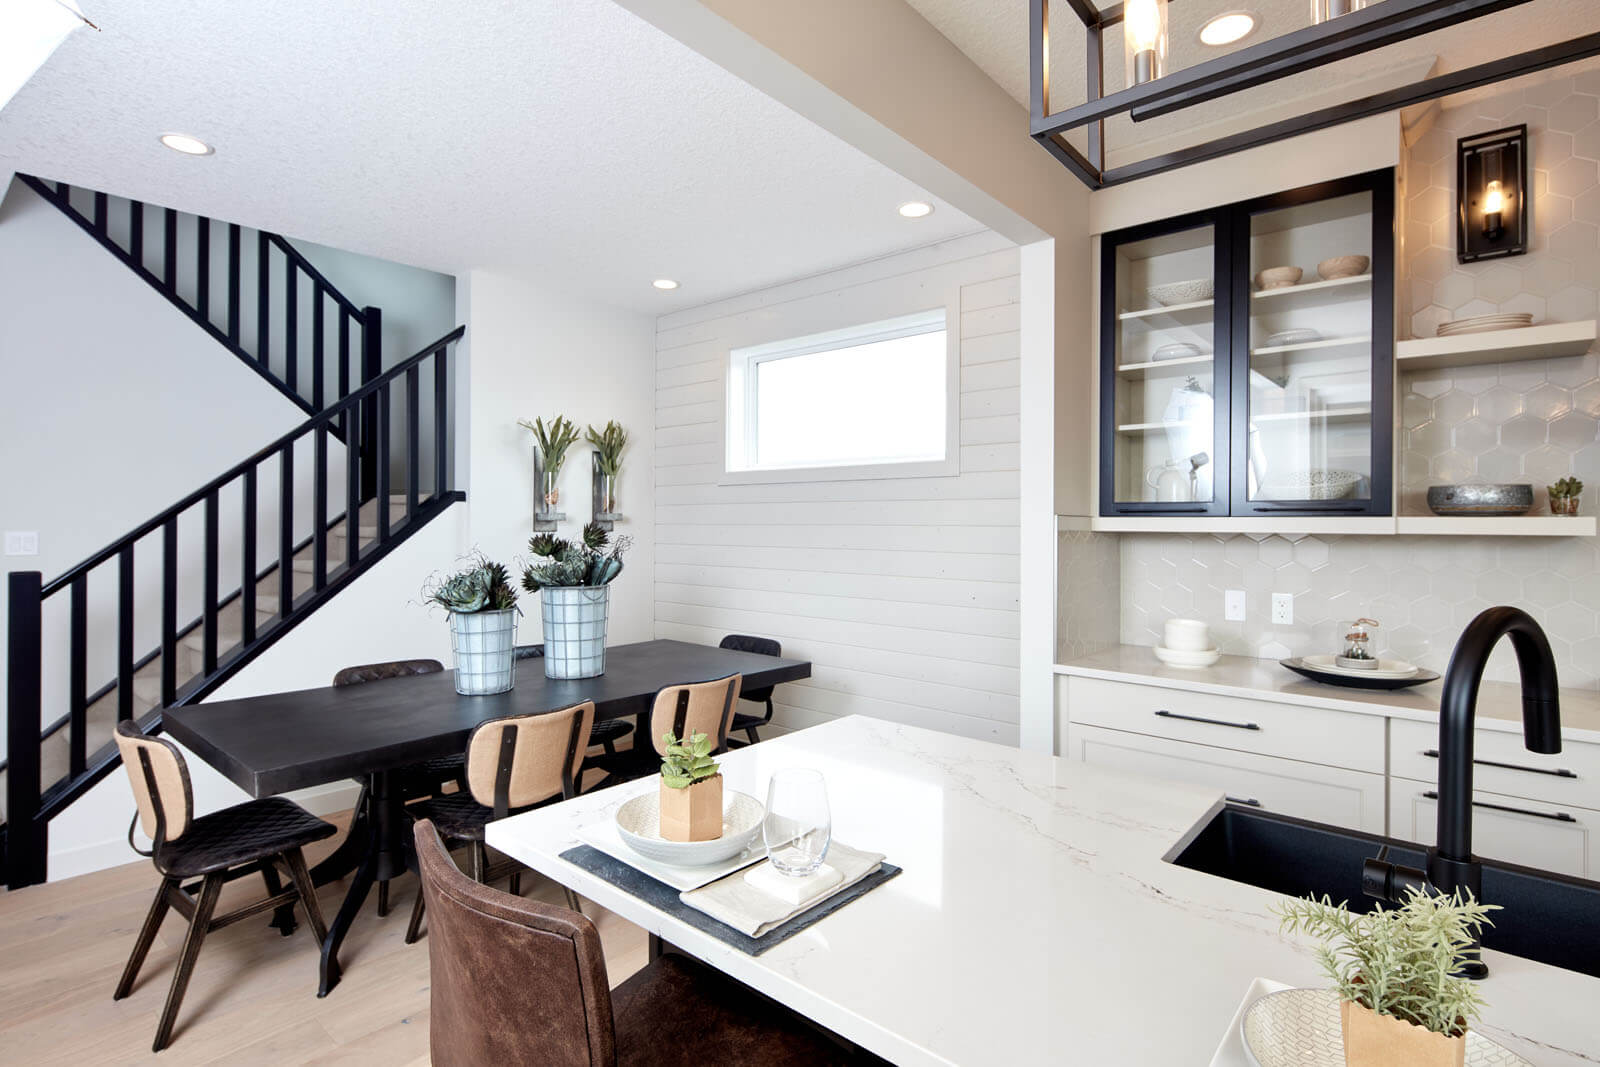 New Calgary  Model Home Ivey Court in Shawnee Park, located at 350 SHAWNEE BOULEVARD SW Built By Cardel Homes Calgary